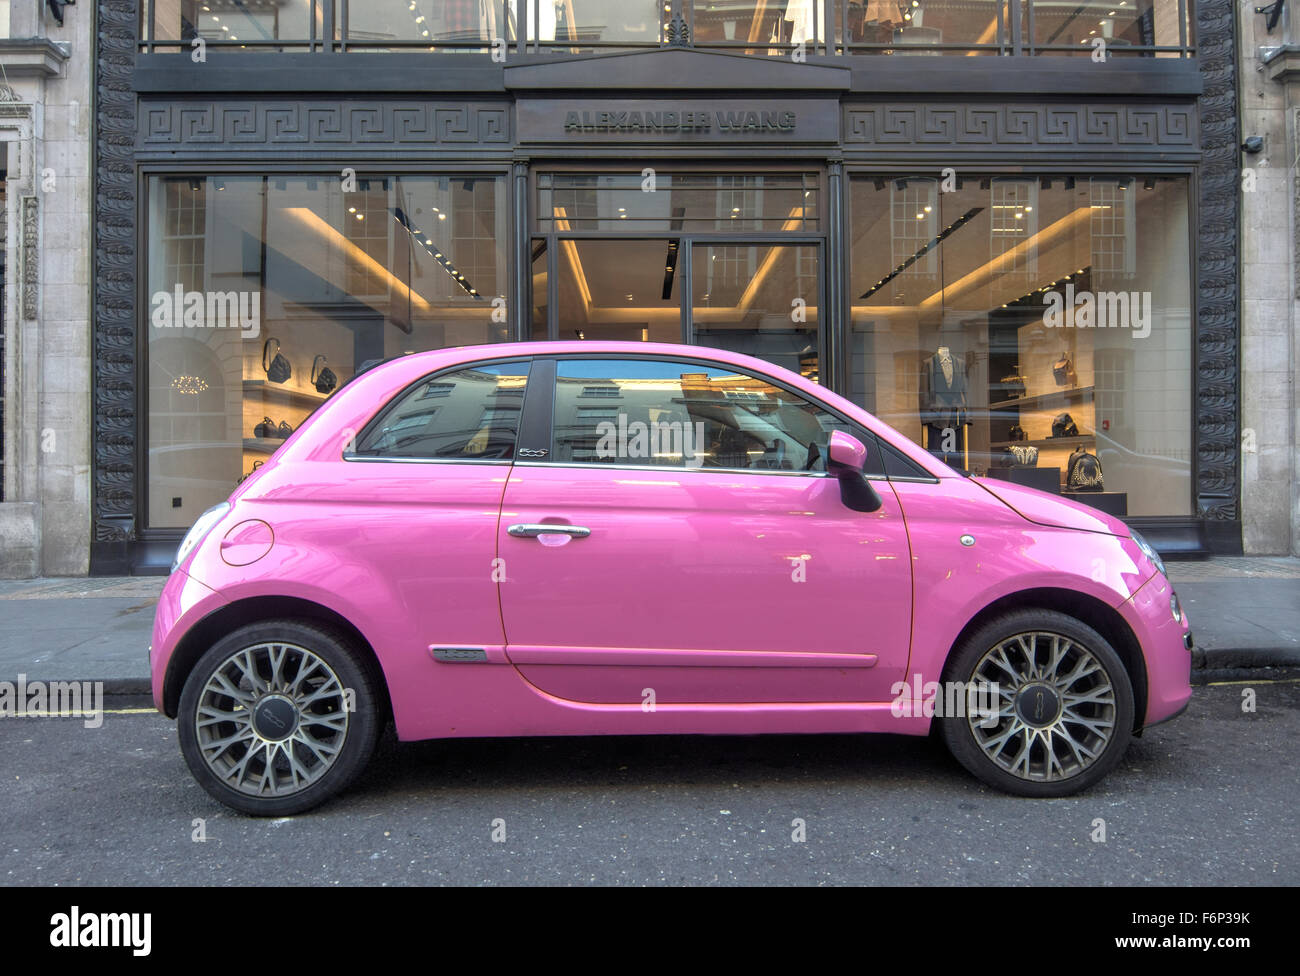 fiat 500 pink car pink fiat 500 stock photo royalty free image 90225343 alamy. Black Bedroom Furniture Sets. Home Design Ideas